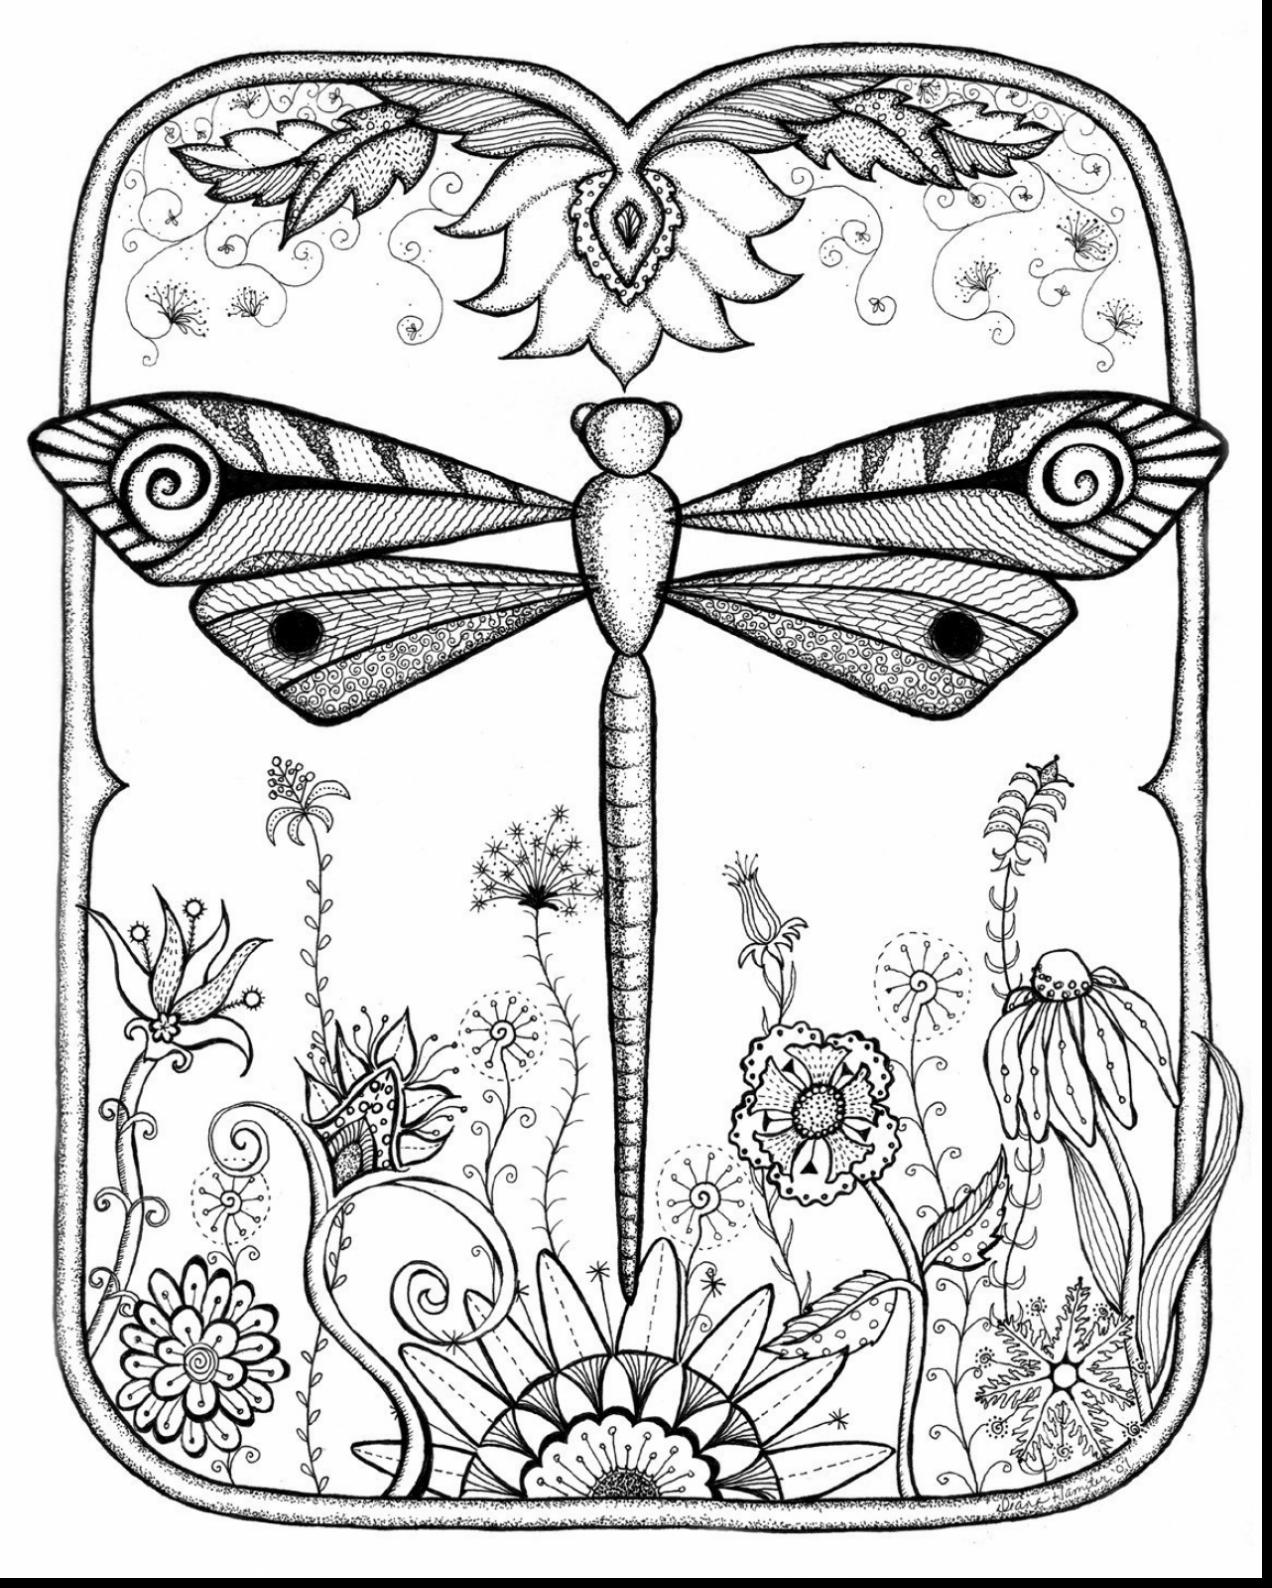 Dragonfly coloring #1, Download drawings